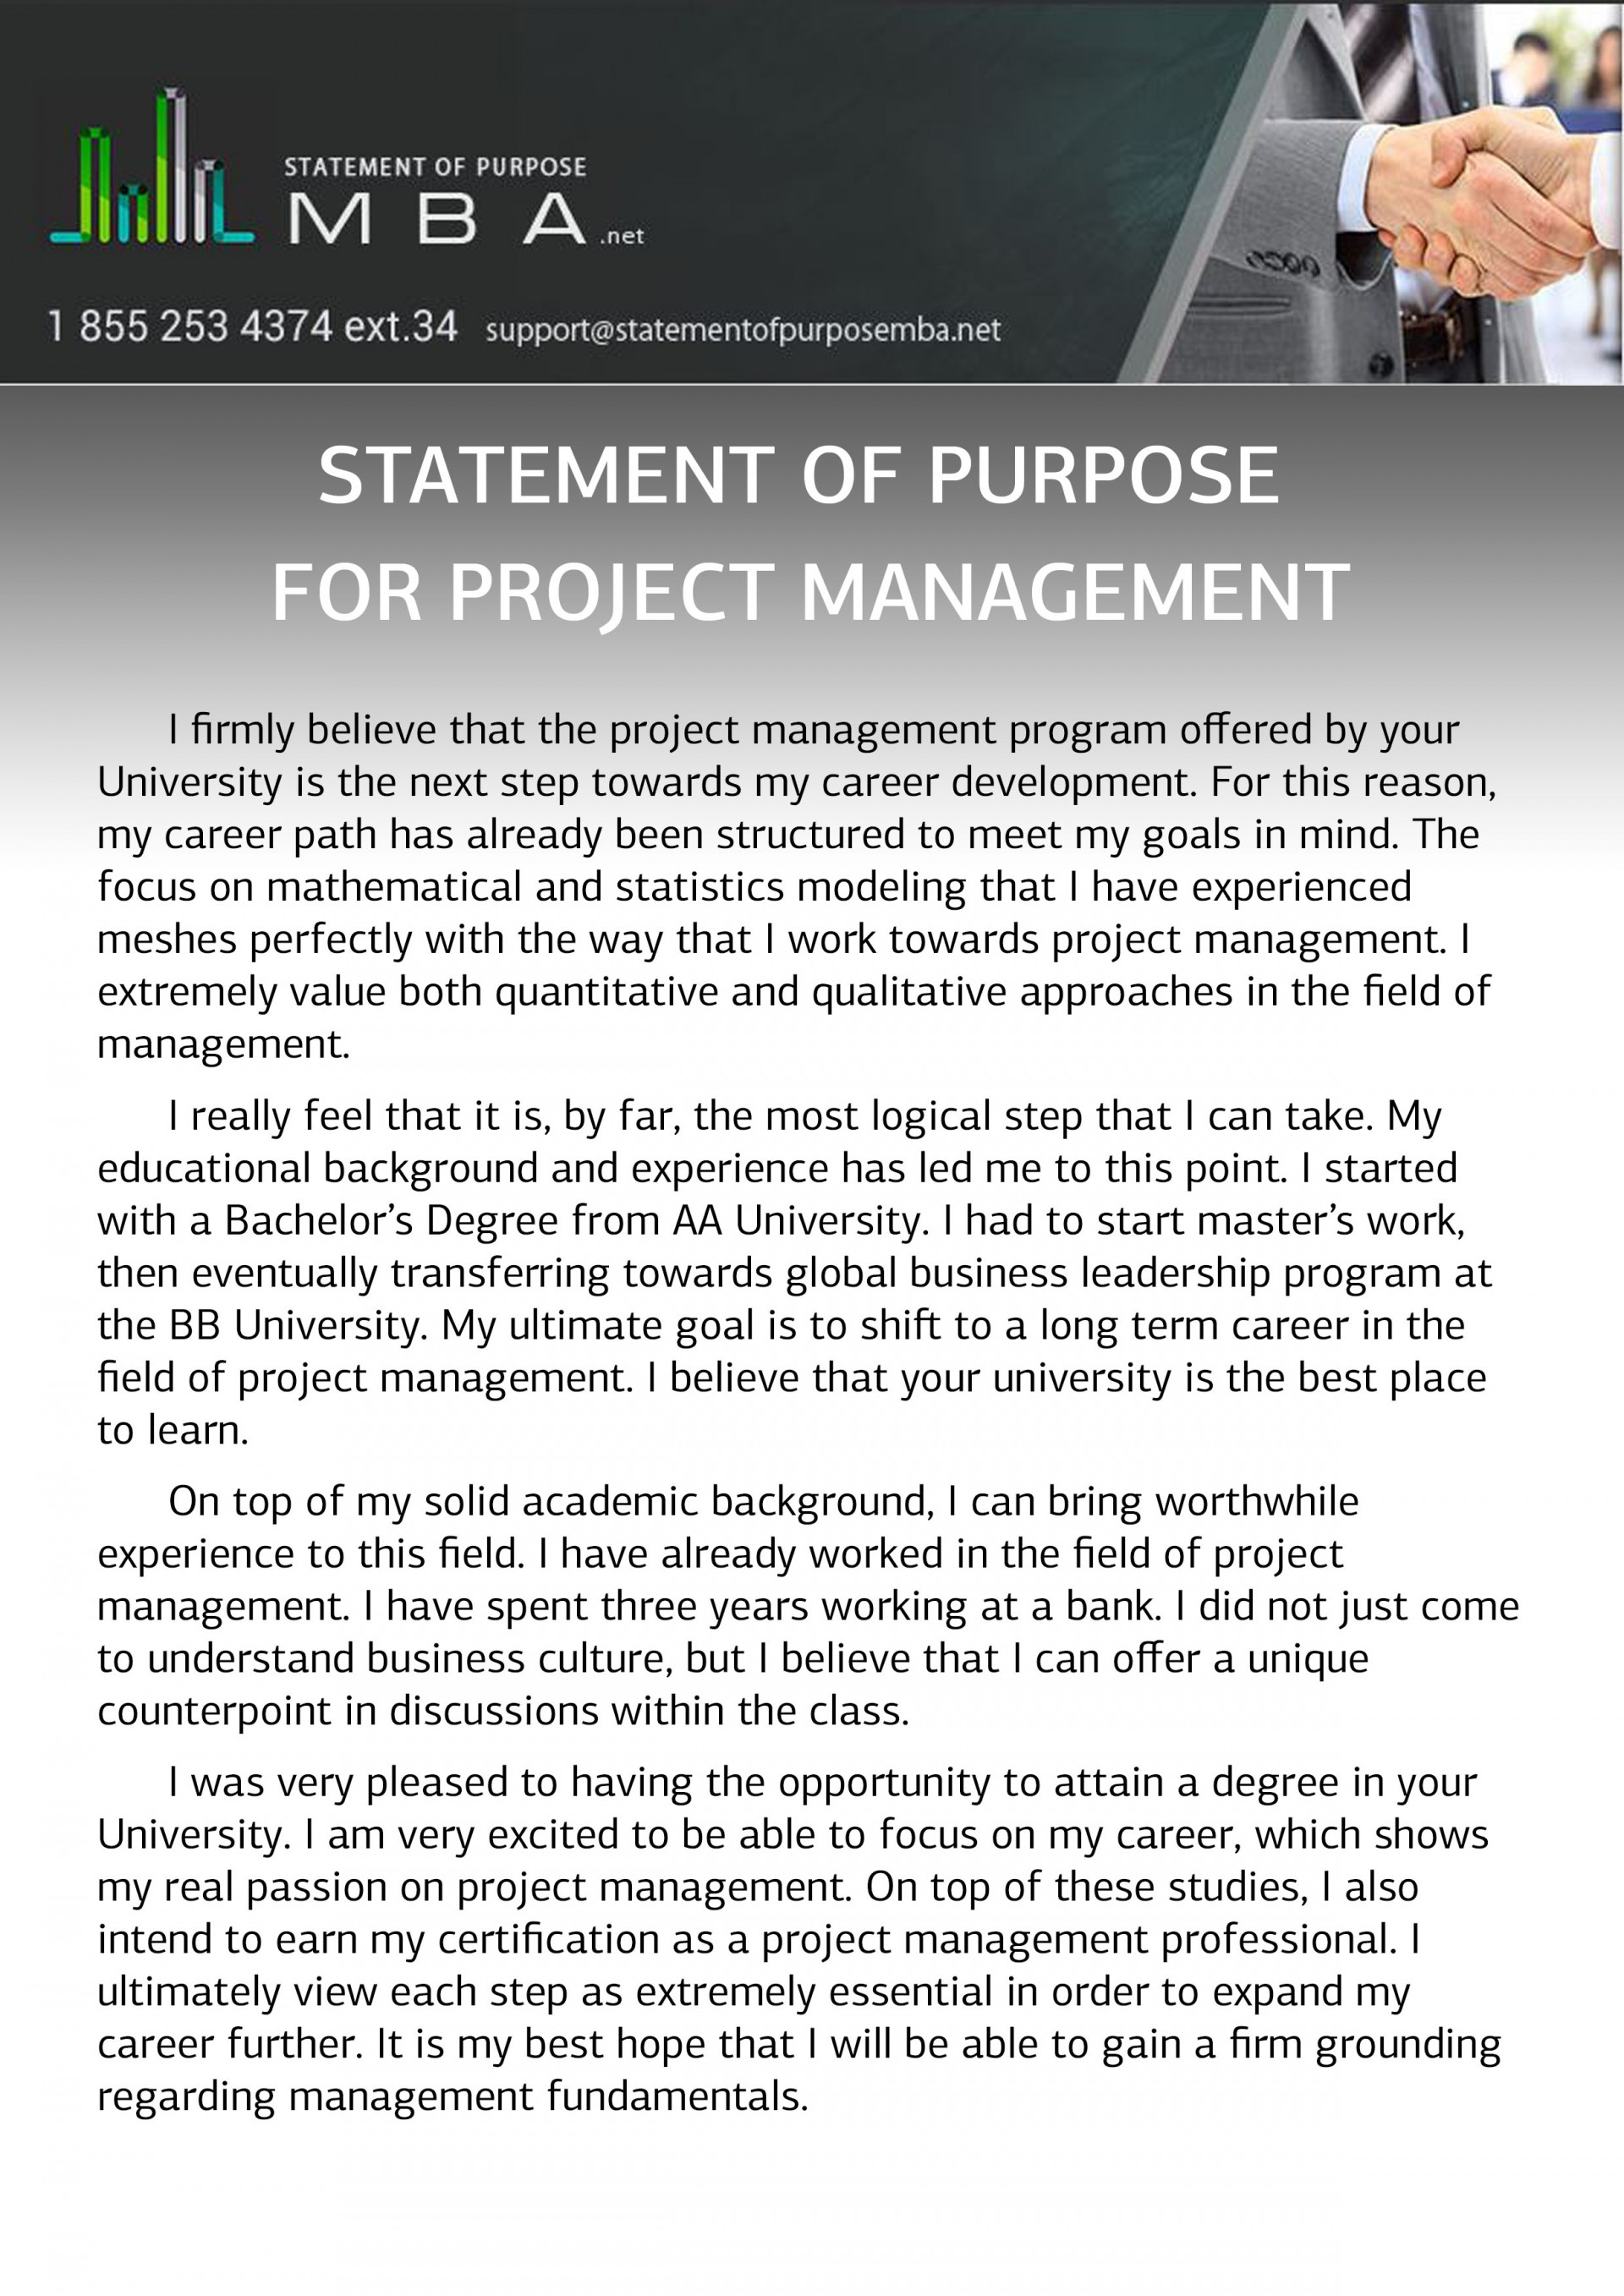 012 What Is The Purpose Of Research Paper Statement For Project Management Impressive A Conducting Critiquing Process Writing 1920